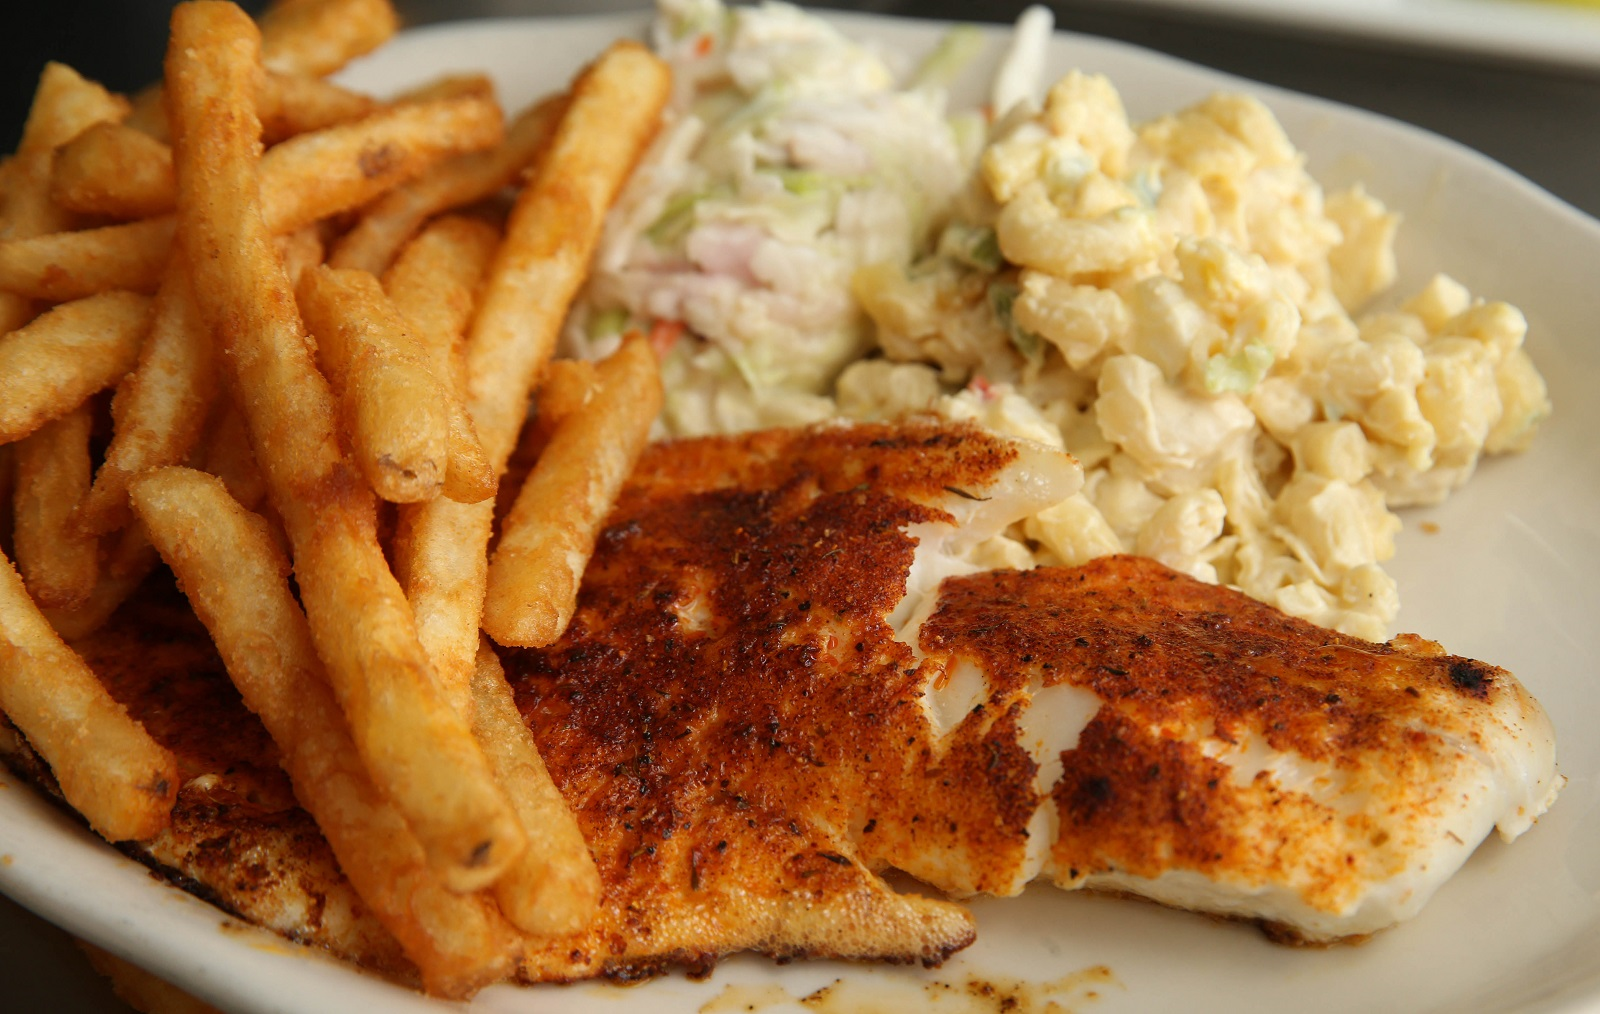 The Cajun broiled haddock comes with house coleslaw, macaroni salad and fries at the French Pub in Depew.  (Sharon Cantillon/Buffalo News)